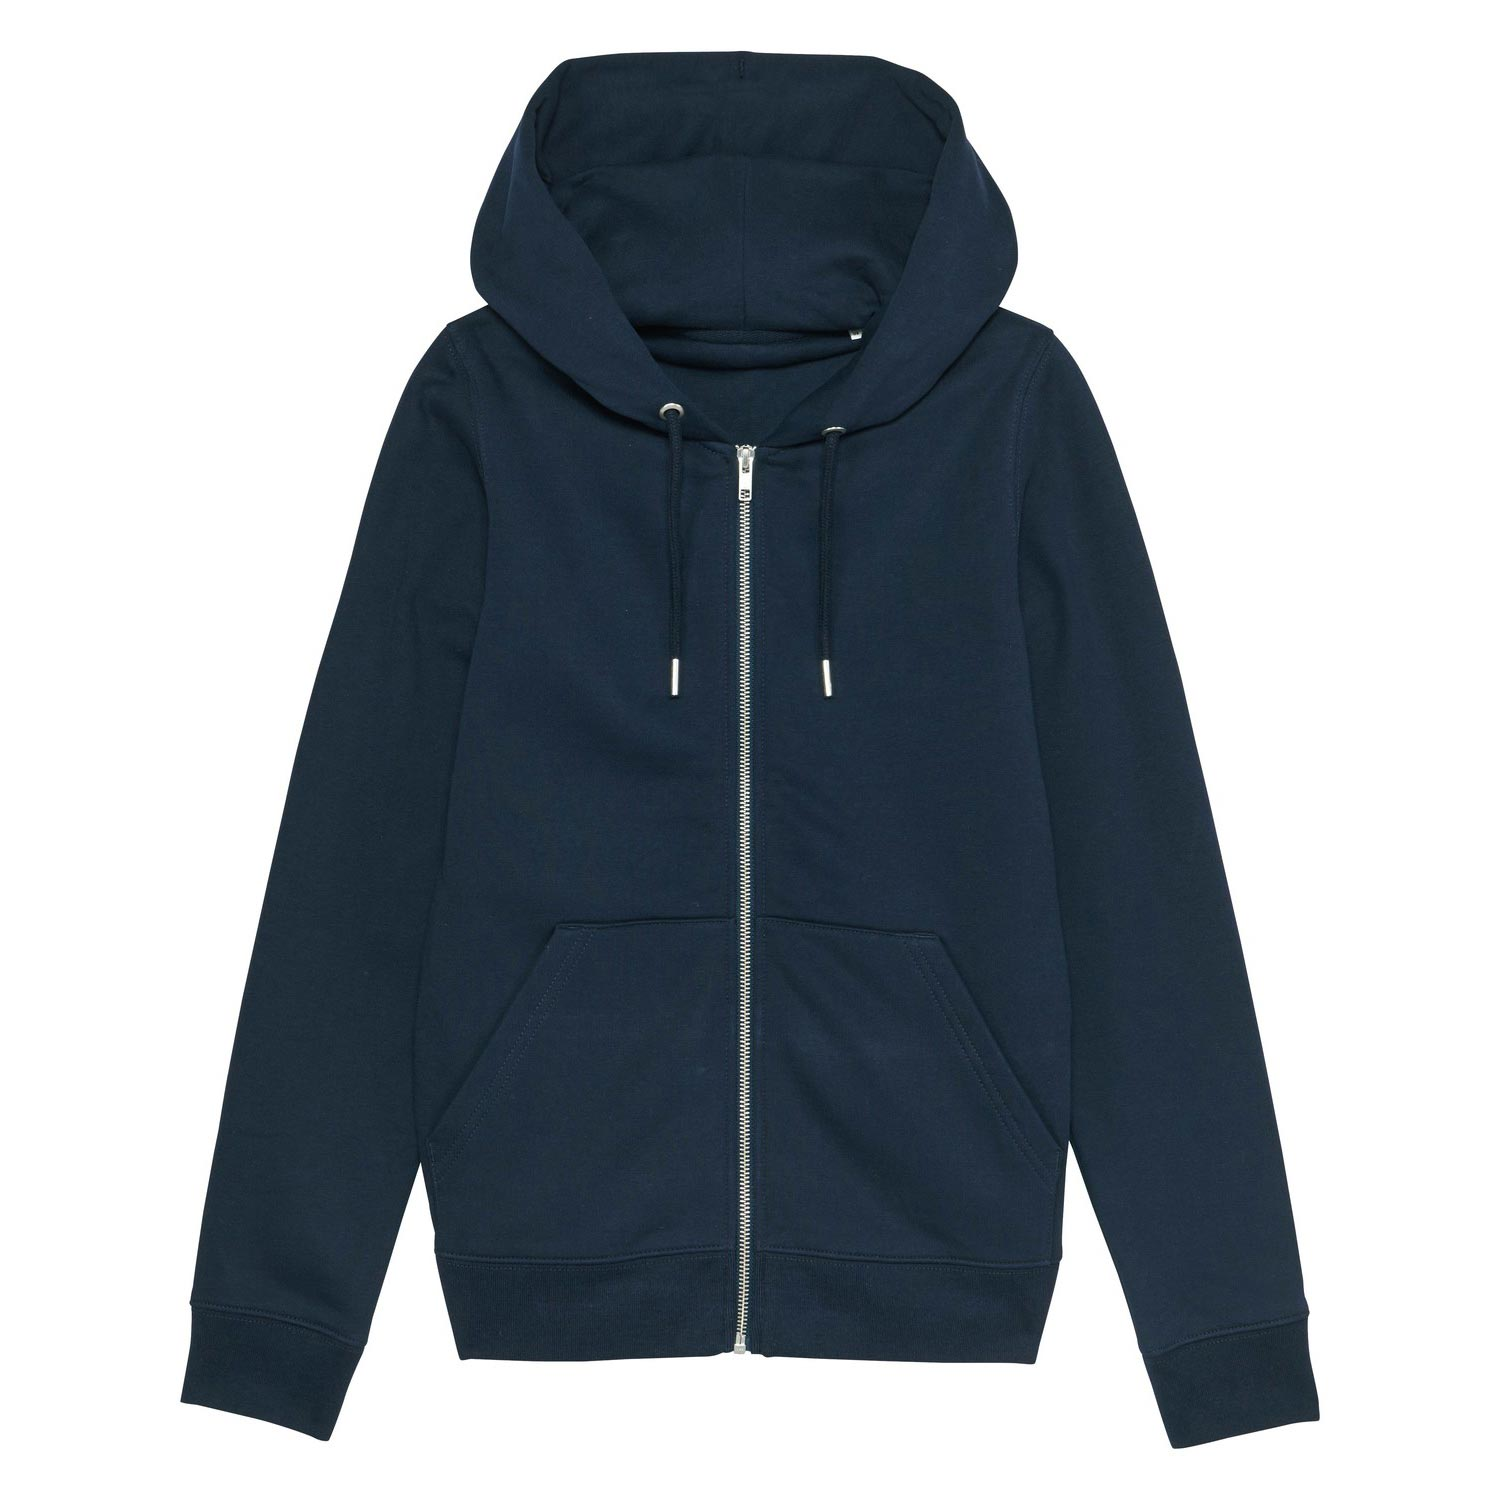 Stanley Stella Iconic Ladies' Zipped Hoodies